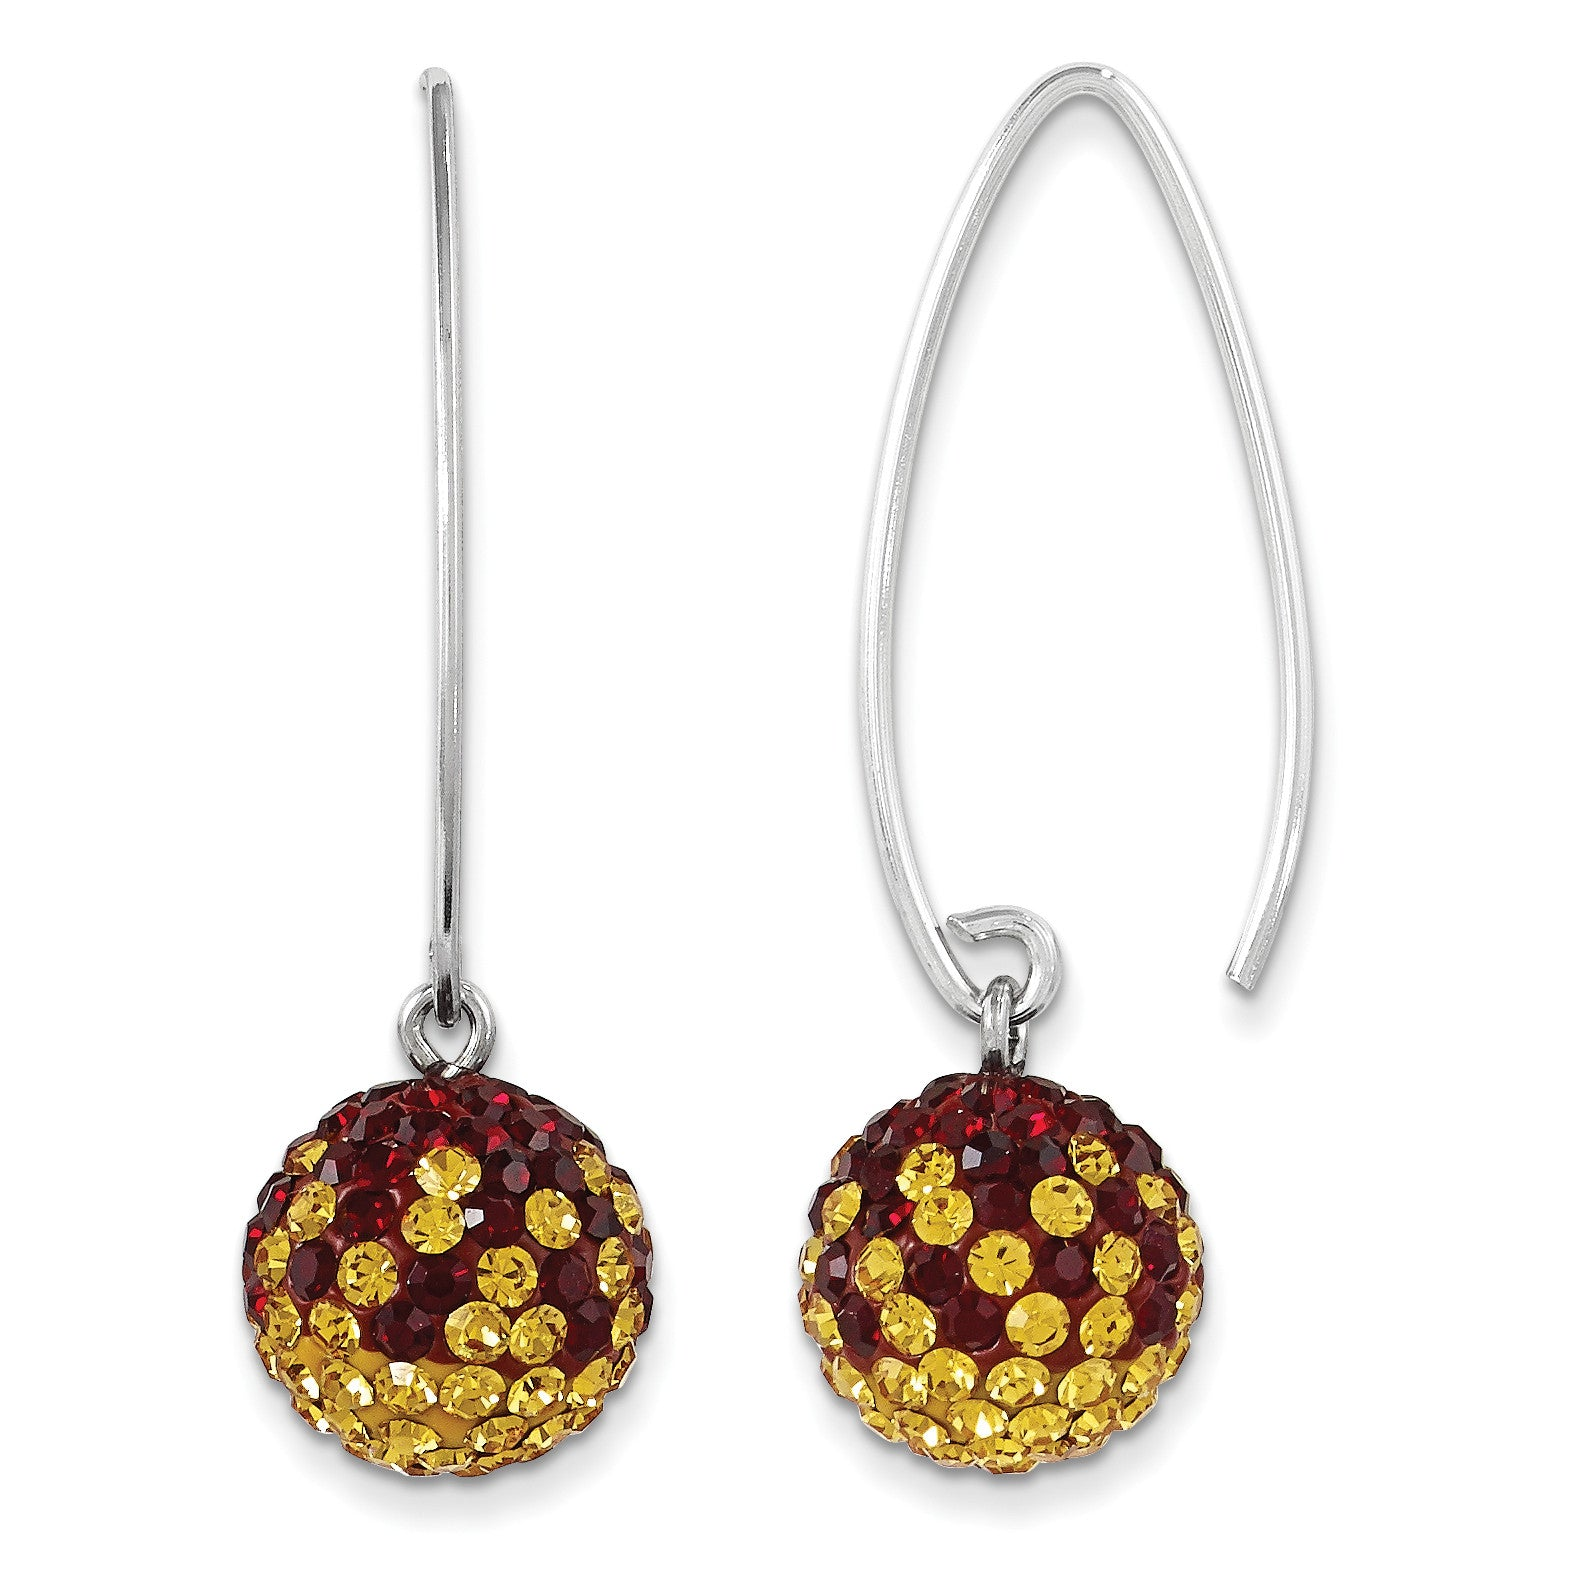 Sterling Silver Swarovski Elements Washington  Spirit Ball Earrings CE0174-026 - shirin-diamonds